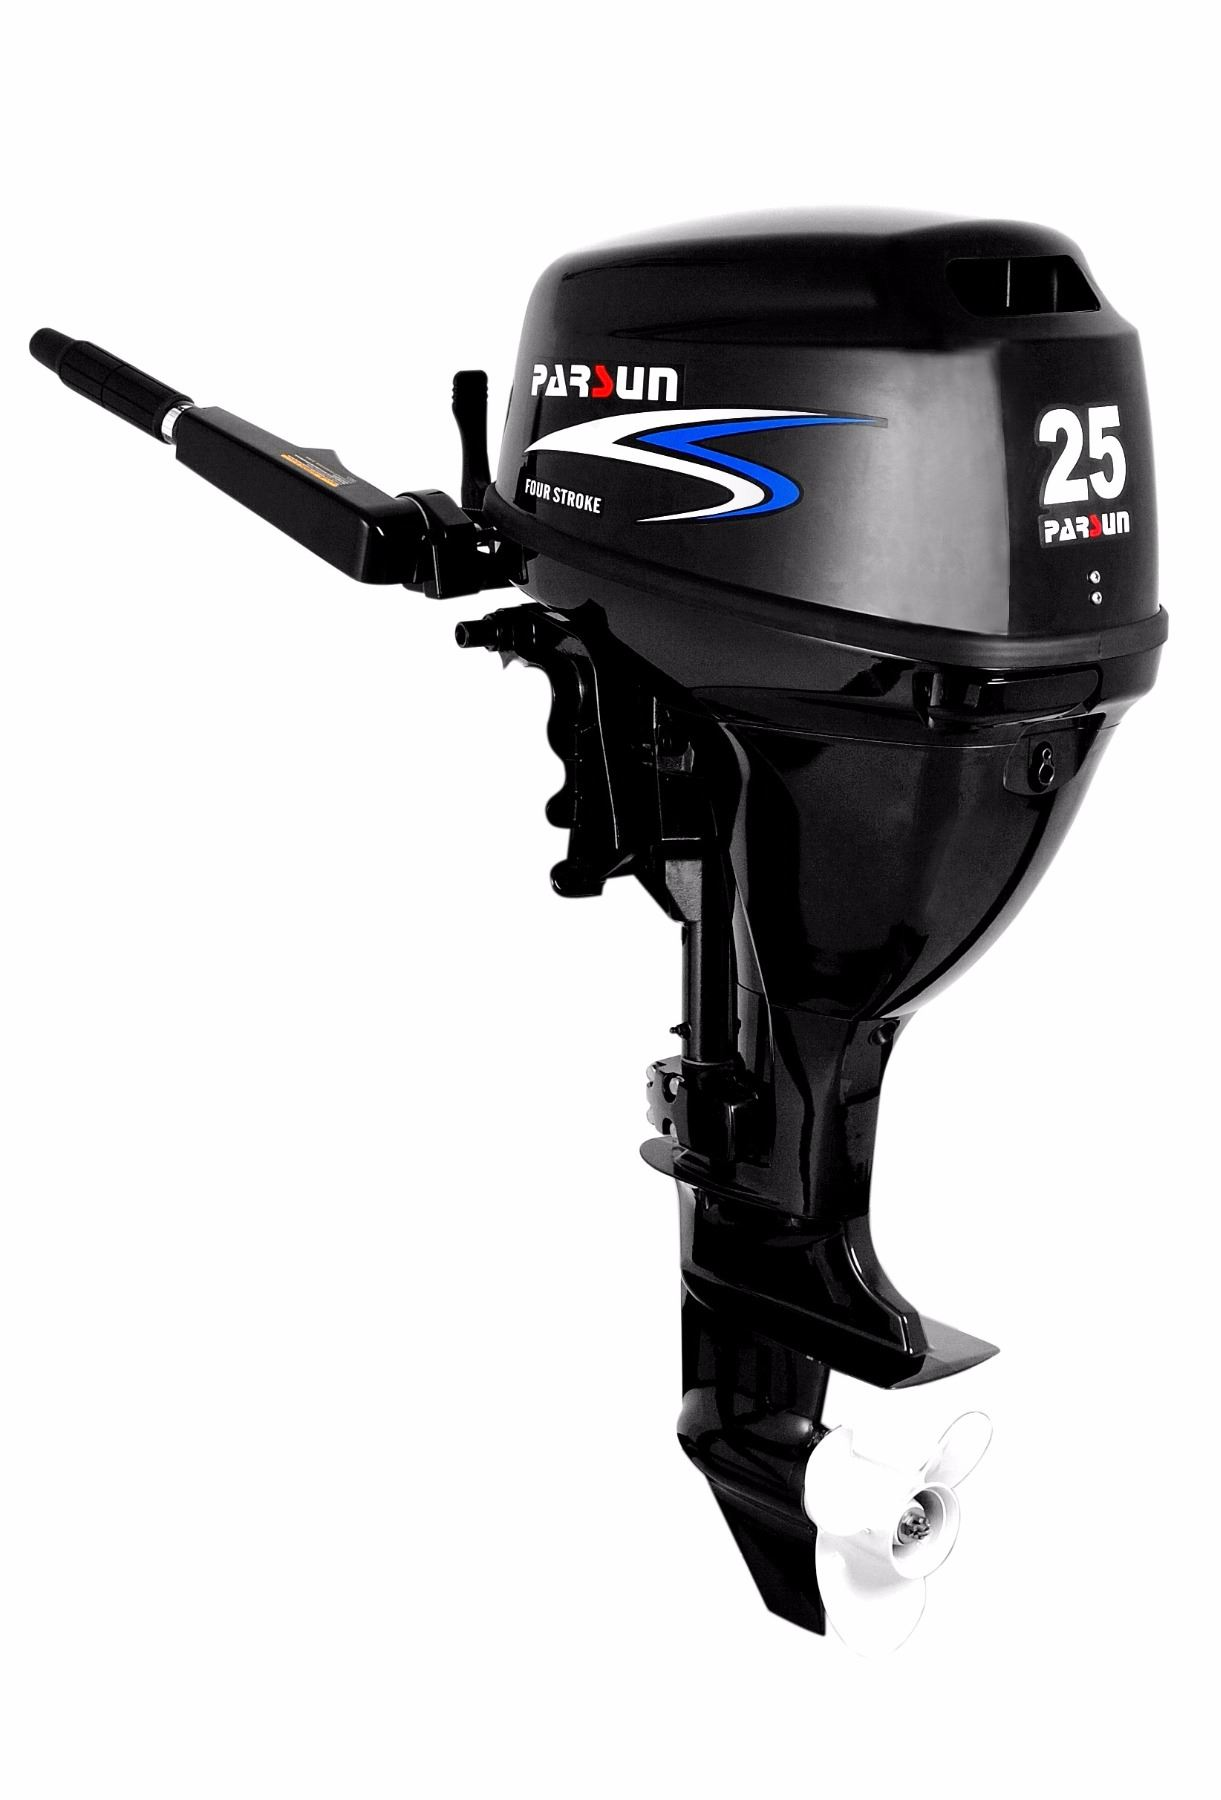 Brand new parsun f25bm 25 hp four stroke outboard motor for 25 hp outboard motor reviews